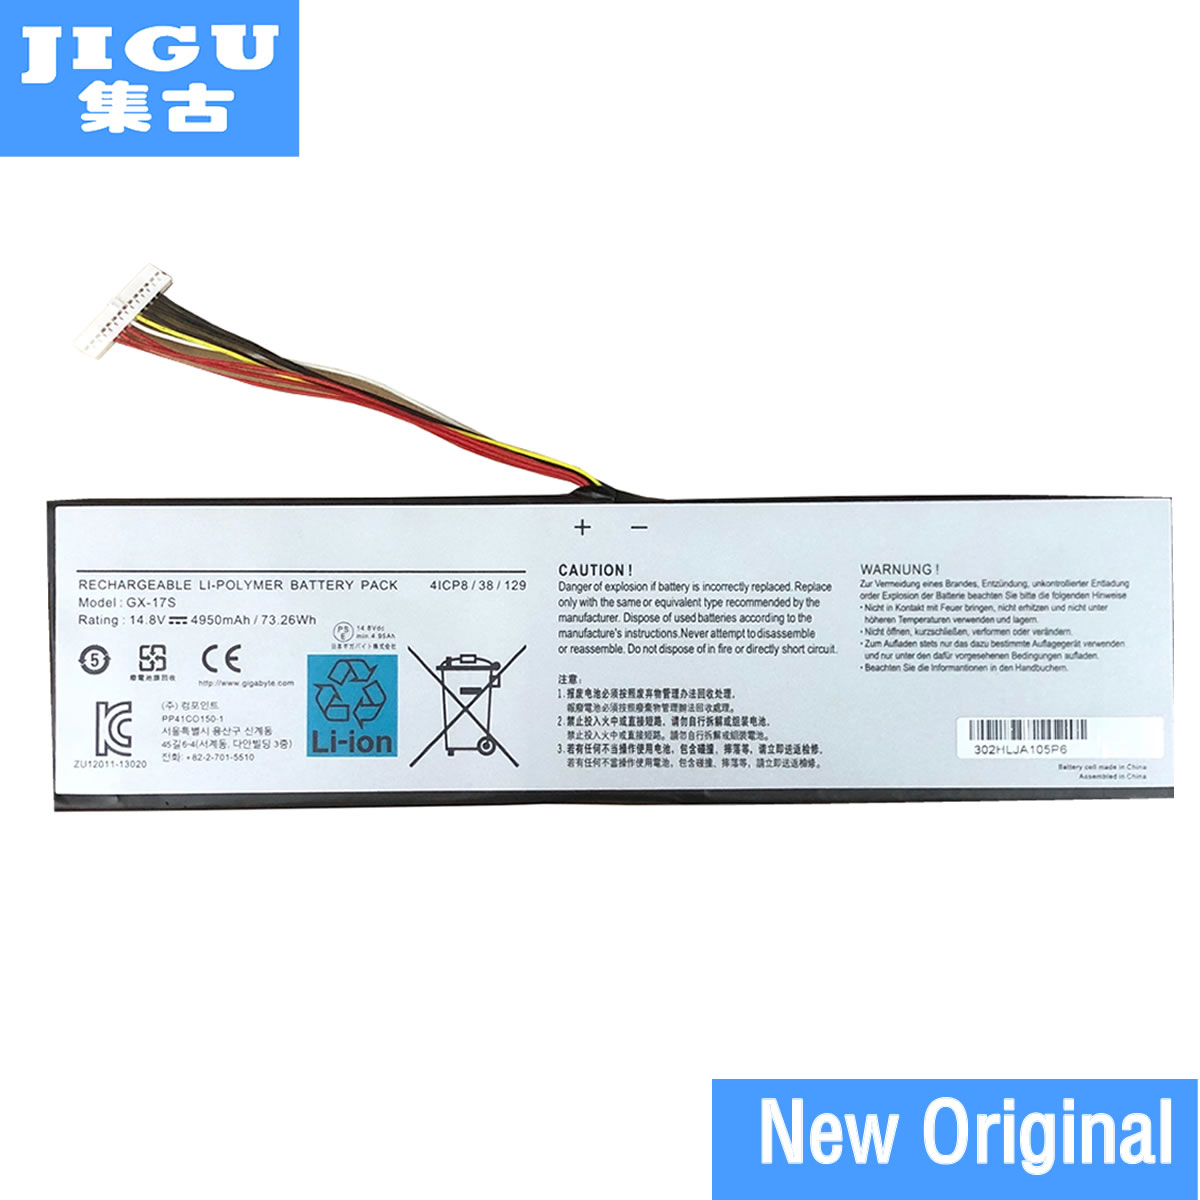 JIGU 14.8V 73.26WHGX-17S Original Laptop Battery For GIGABYTE For AORUS X3 Plus V5 V3 For Aorus X7 X3 Plus v7-KL3K4 14 8v 73 26wh 4950mah gx 17s new original gx 17s laptop battery for gigabyte aorus x3 x3 plus v3 x7 x7 v2 x3 plus v5 x5s